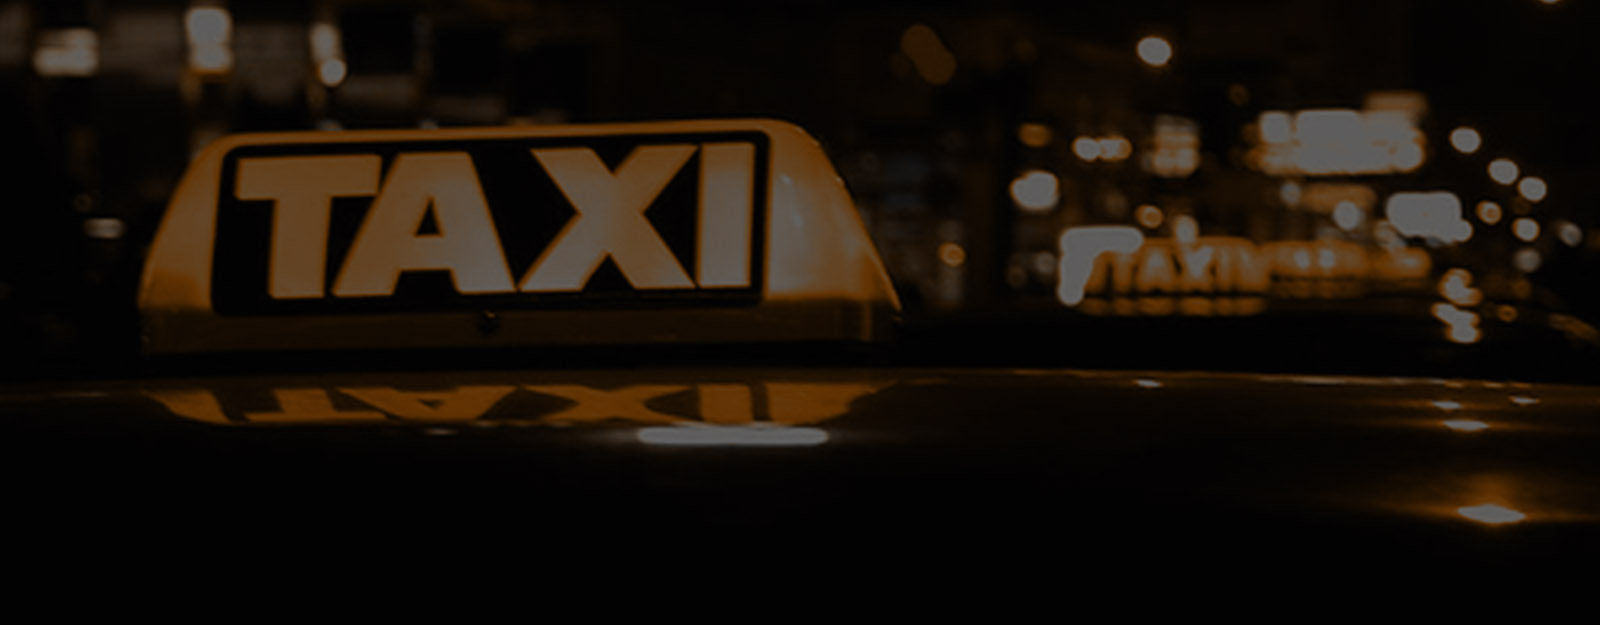 taxi-barcelona-background-